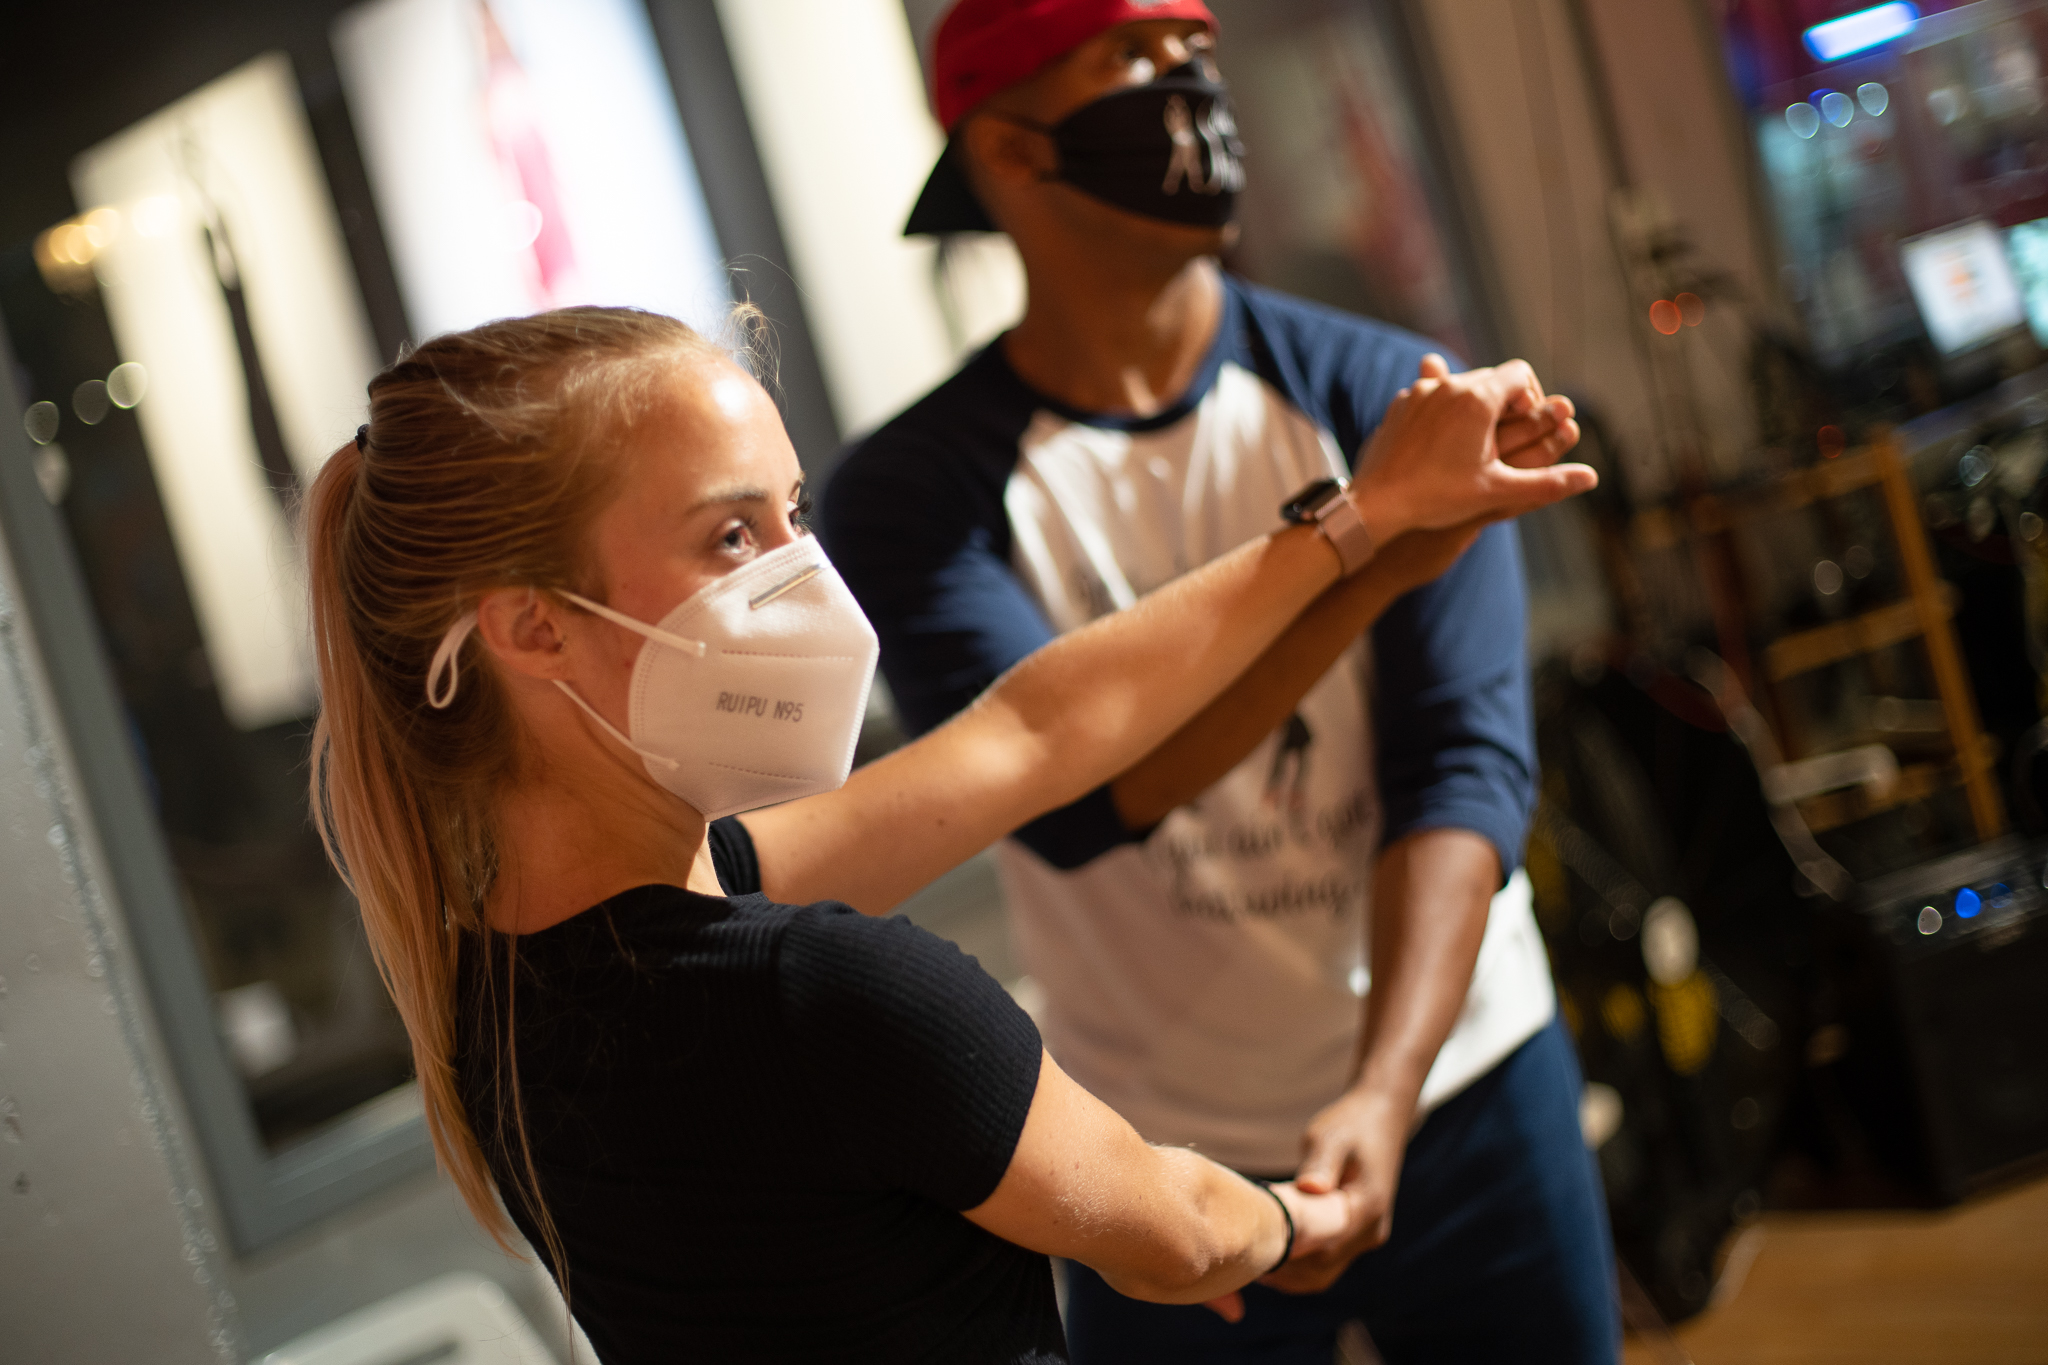 Salsa students take a class at the Salsa With Silvia dance studio while wearing masks during COVID-19